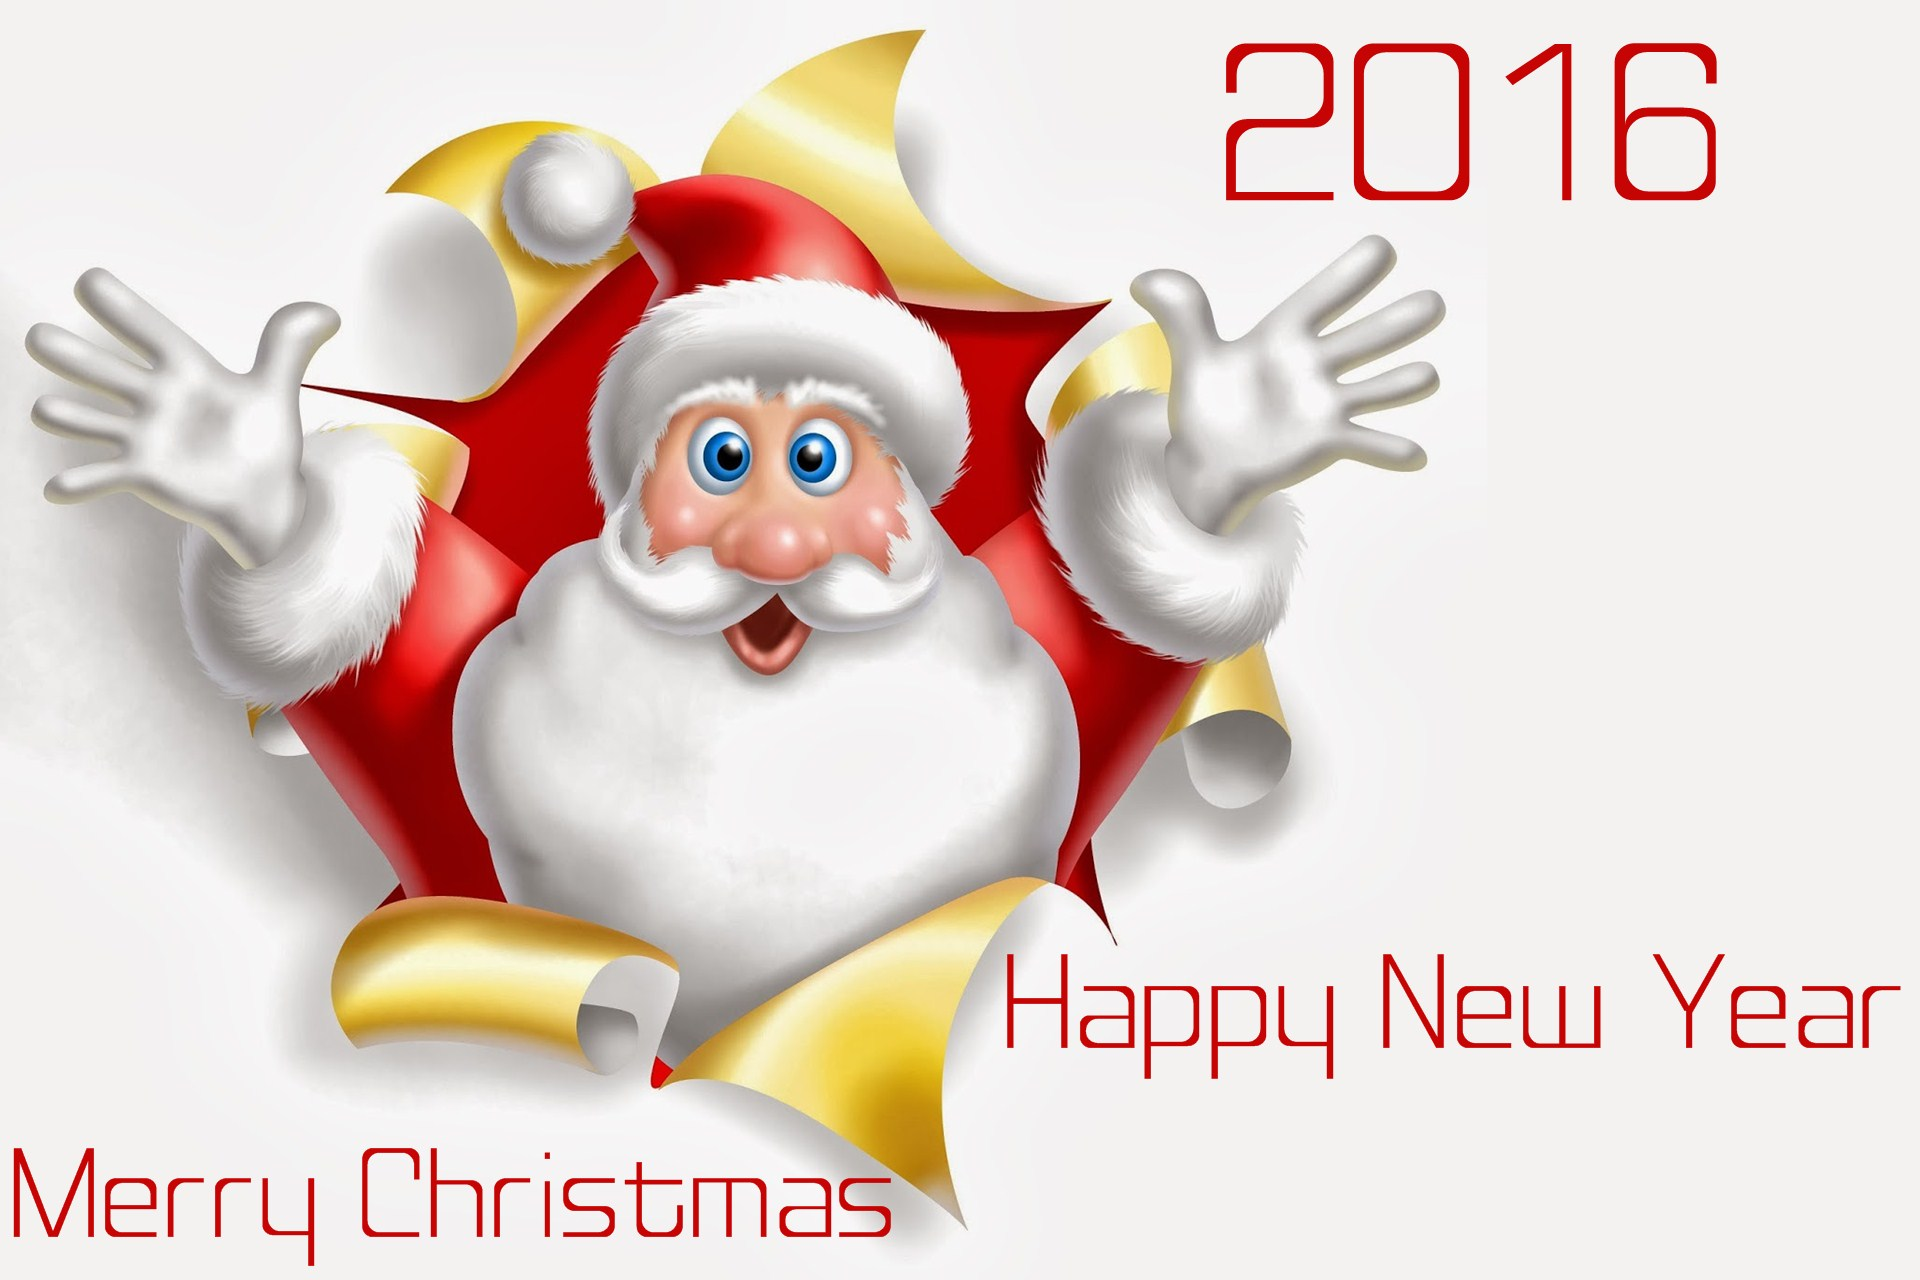 Christmas 2016 Wishes, Images, Sayings and Messages for WhatsApp